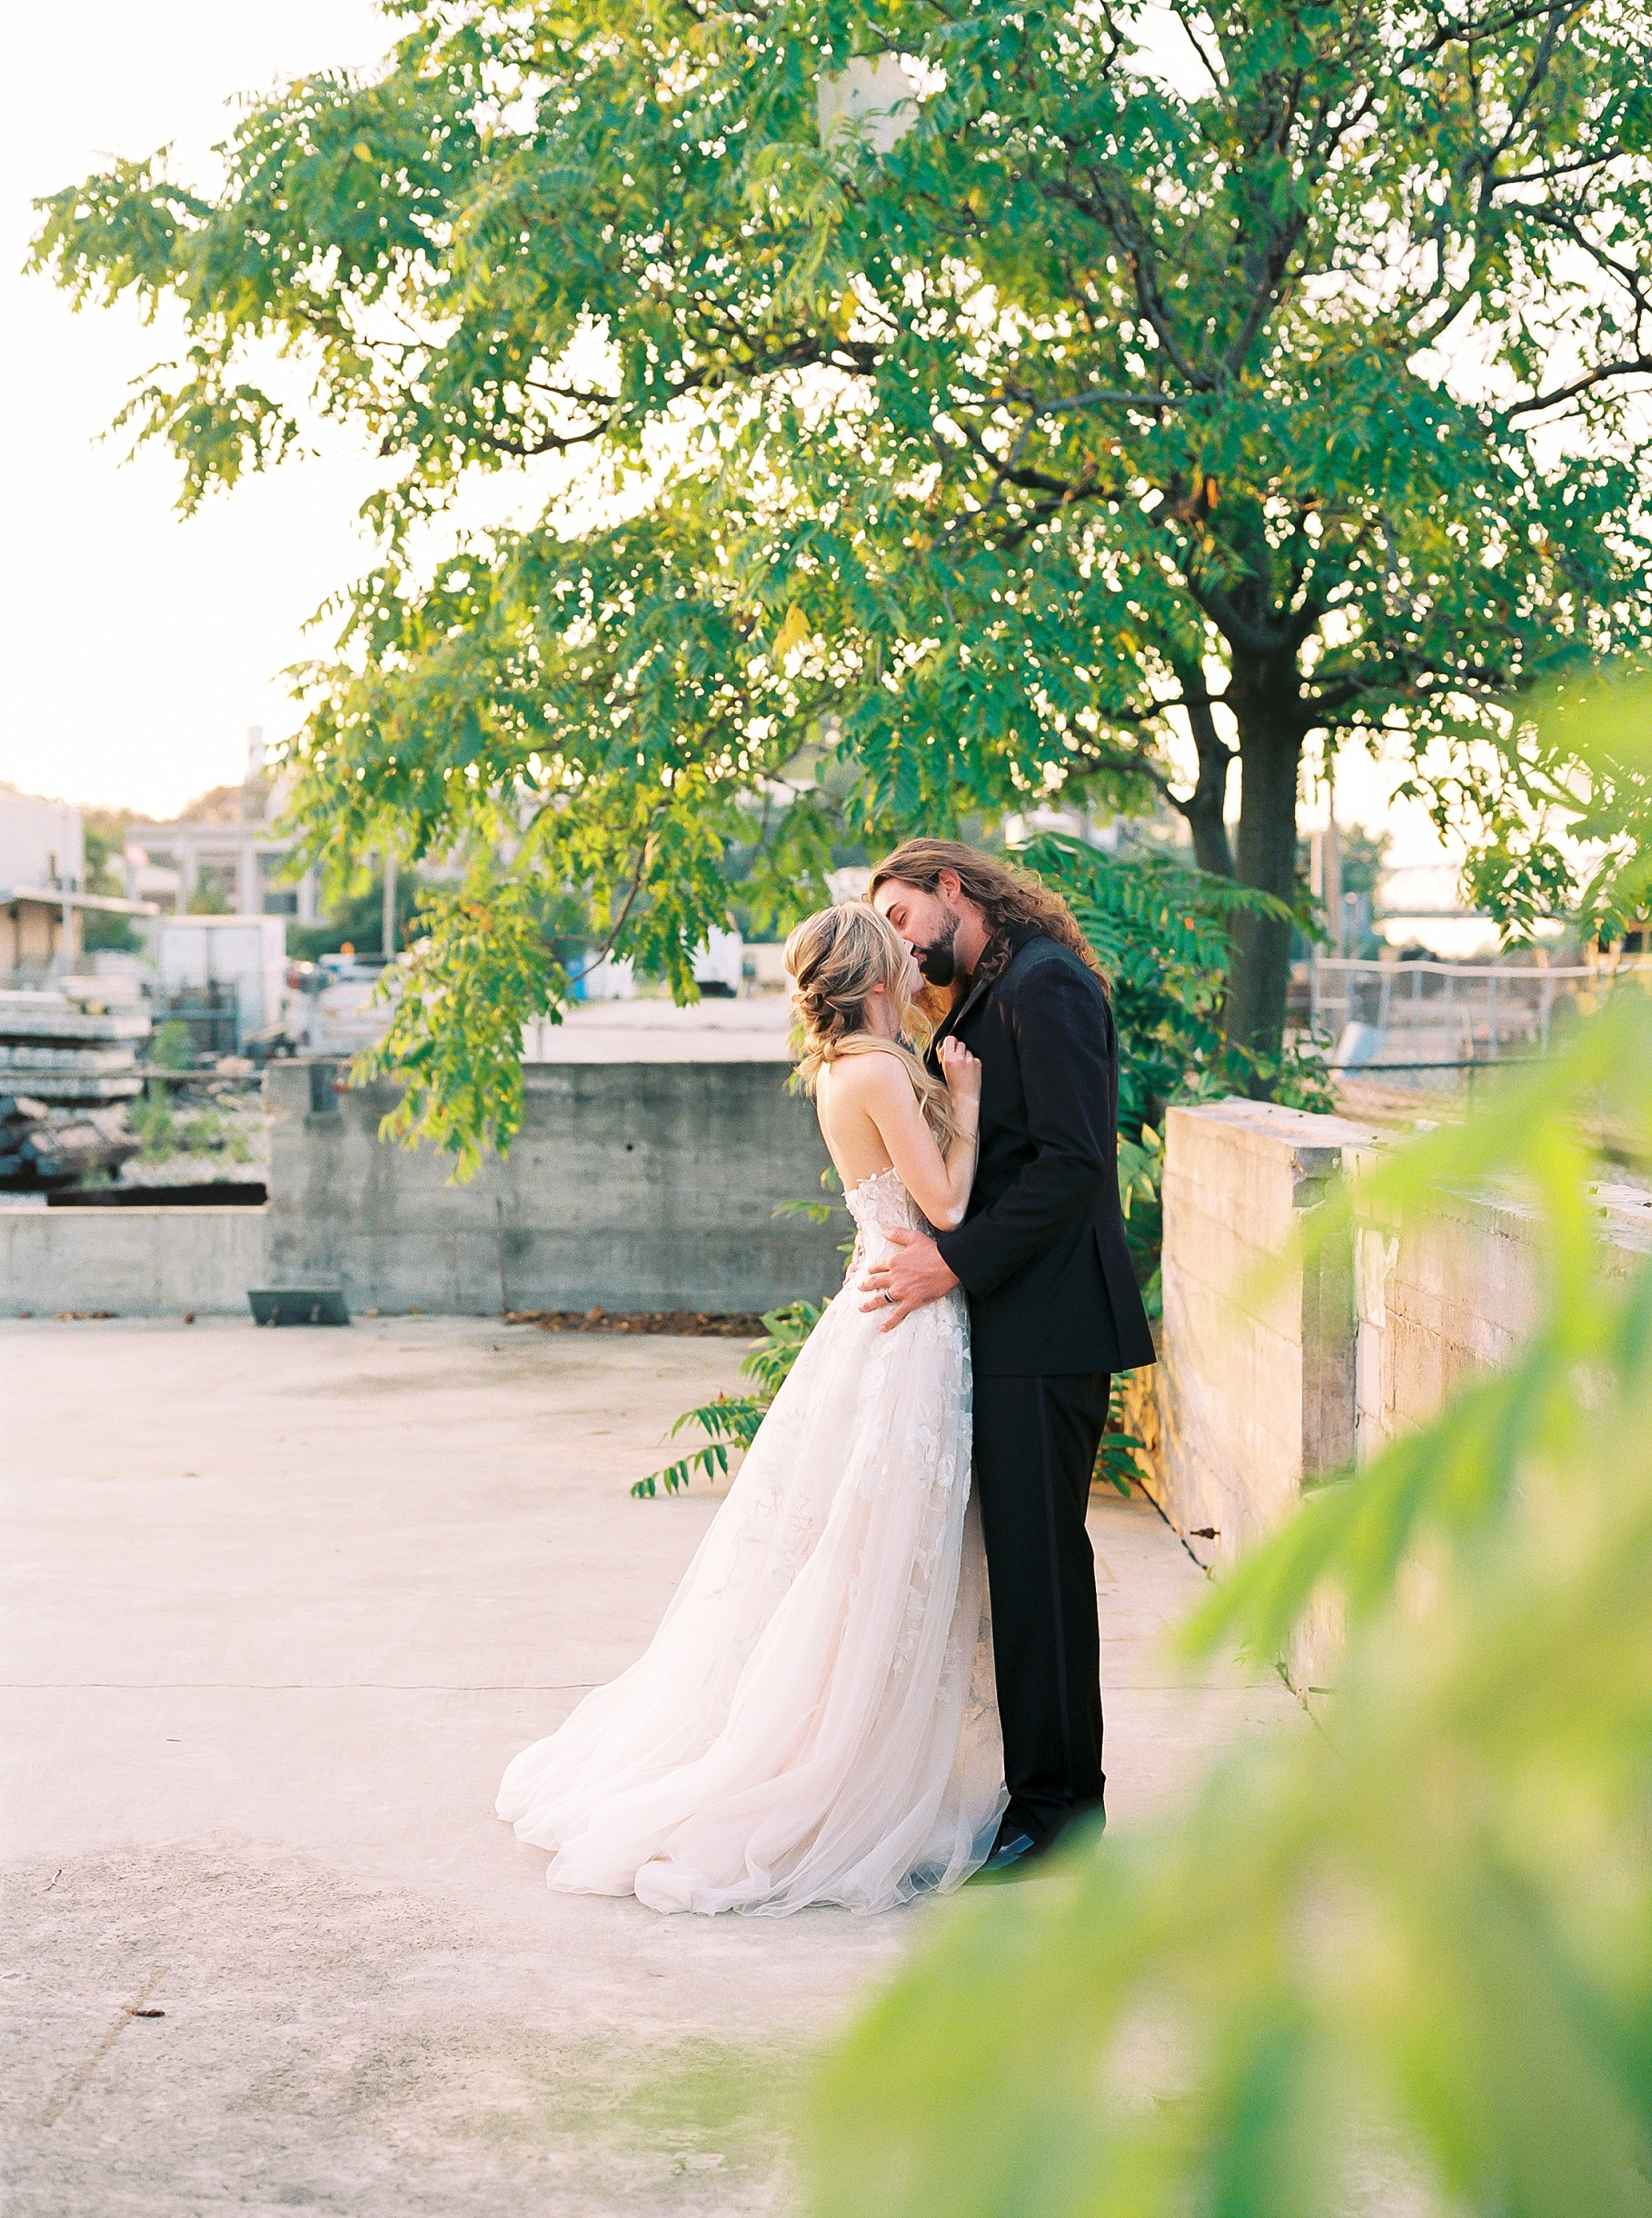 Urban Romance Wedding with Copper Accents at The Millbottom by Kelsi Kliethermes Photography Best Columbia Missouri Wedding Photographer_0053.jpg